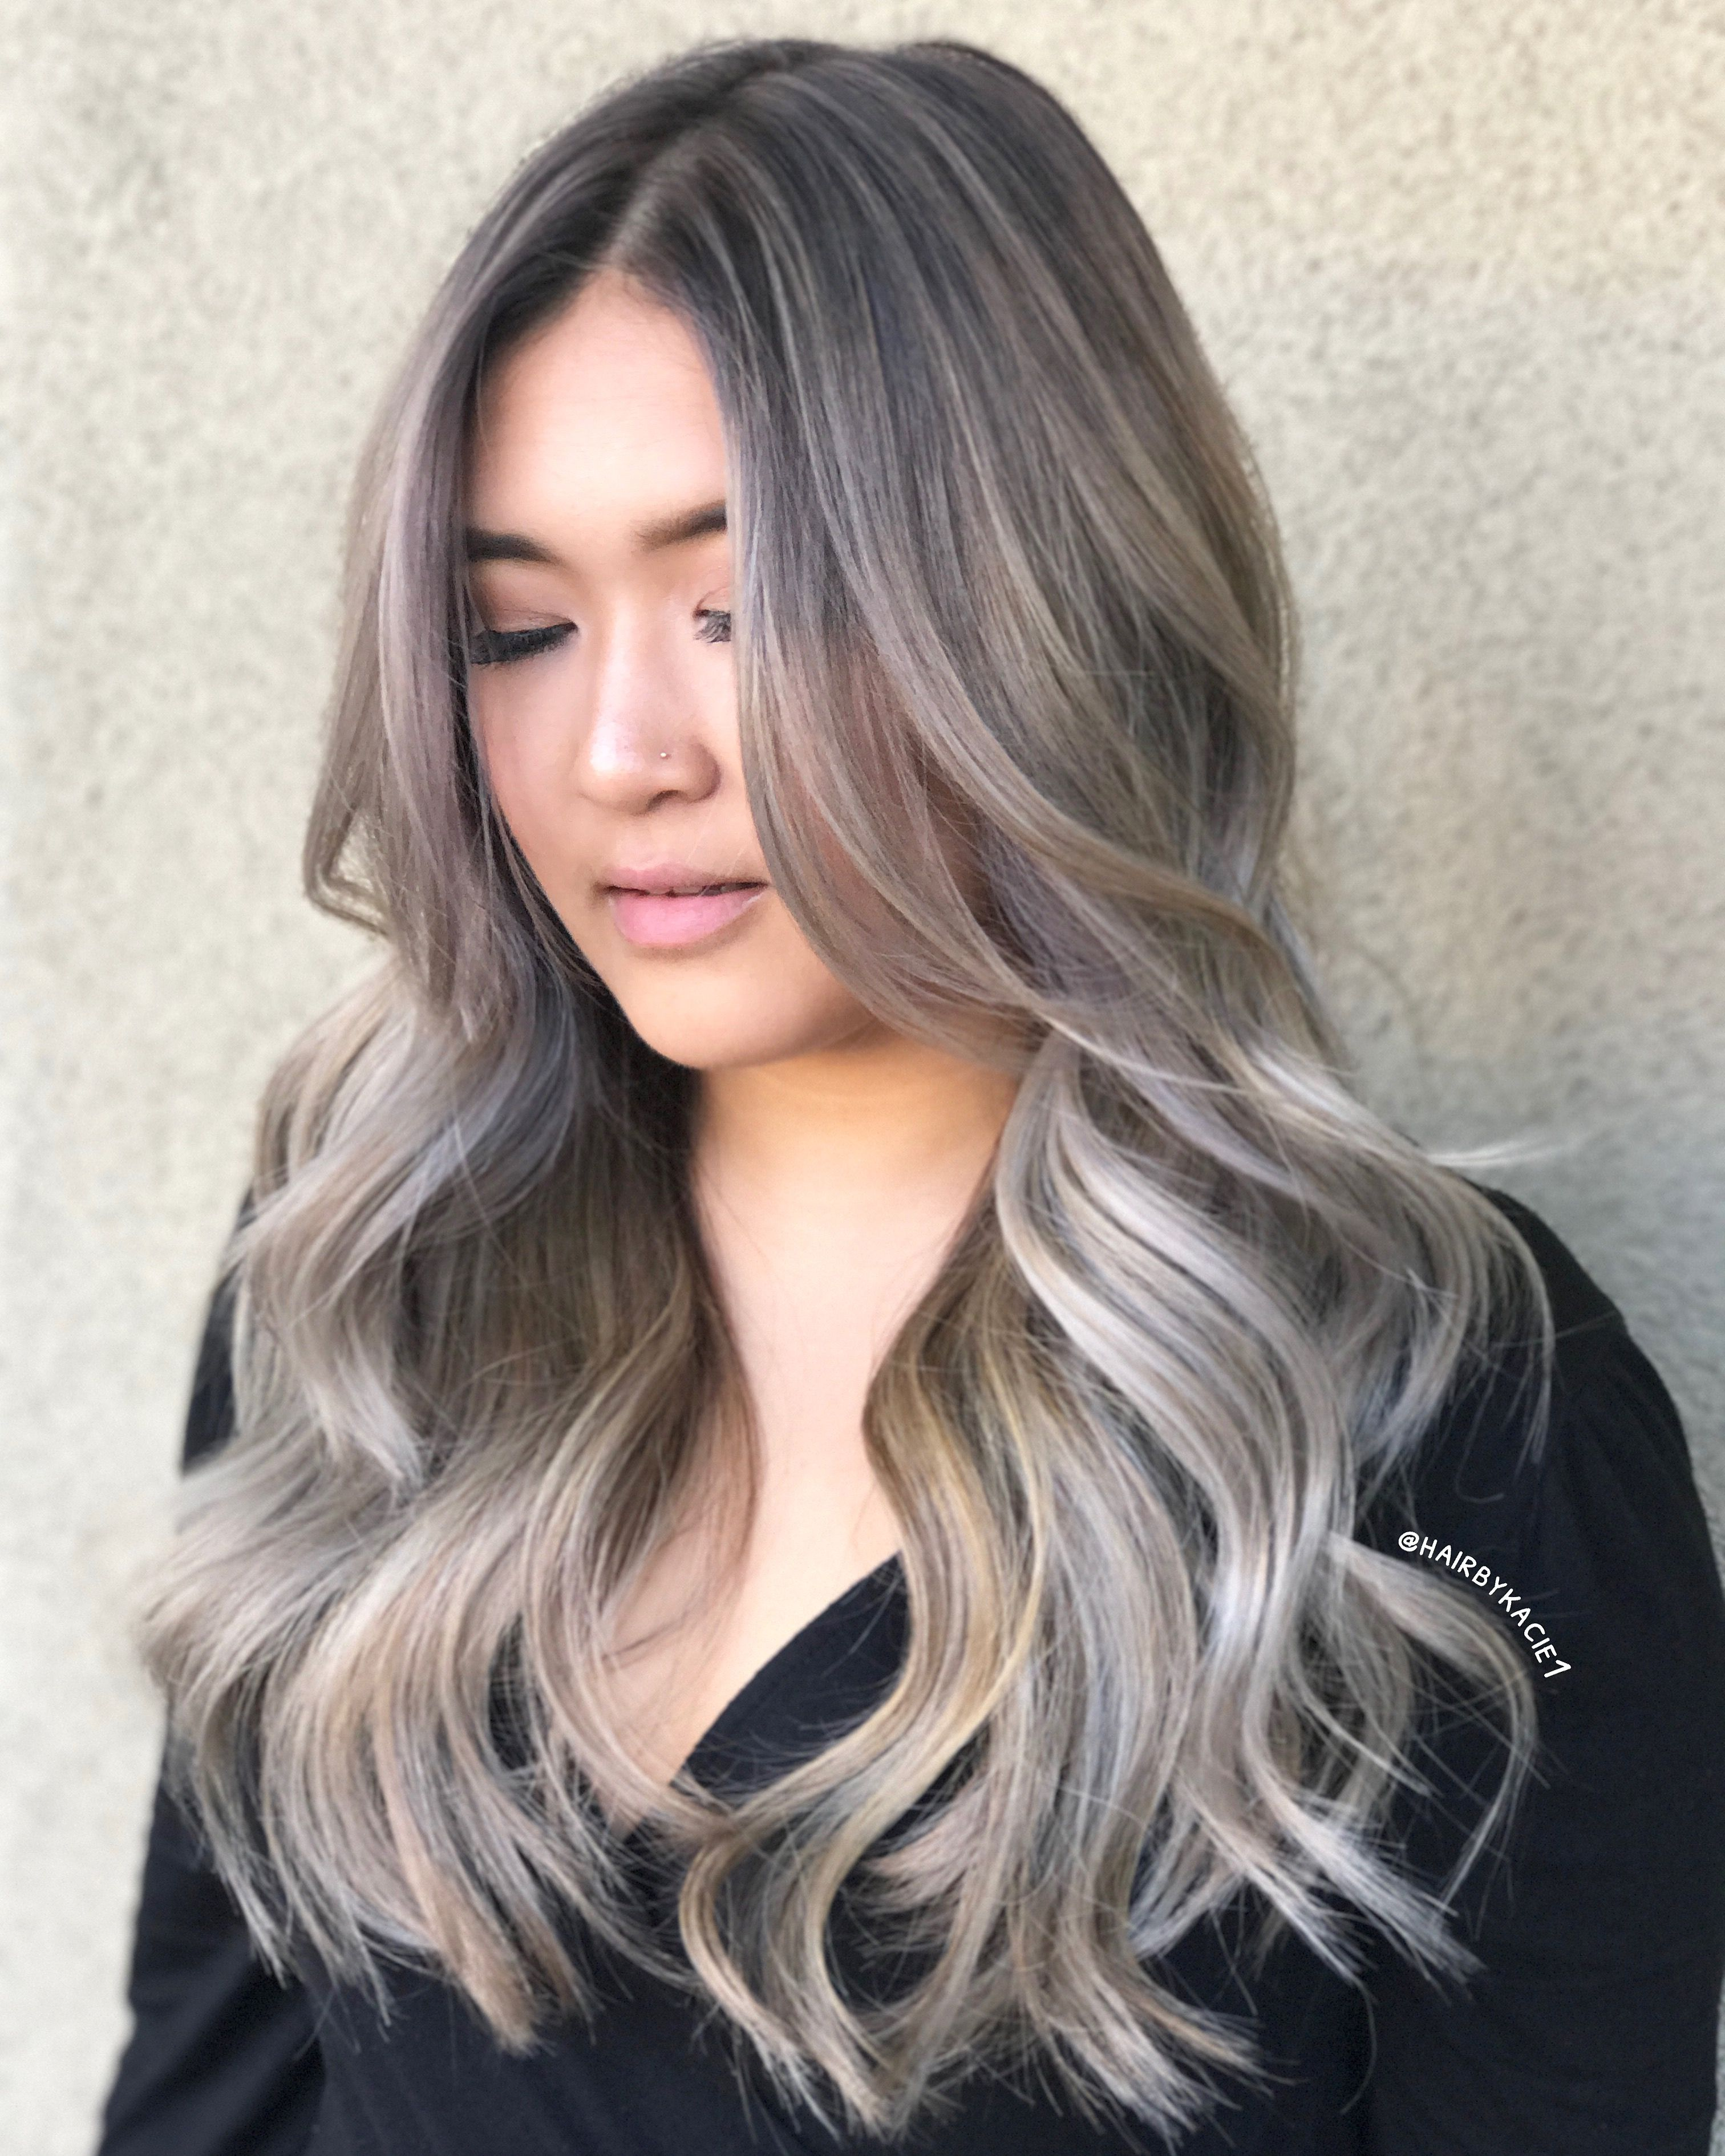 Pin By Mary Lemus On Blondes Beige Hair Silver Blonde Hair Boliage Hair